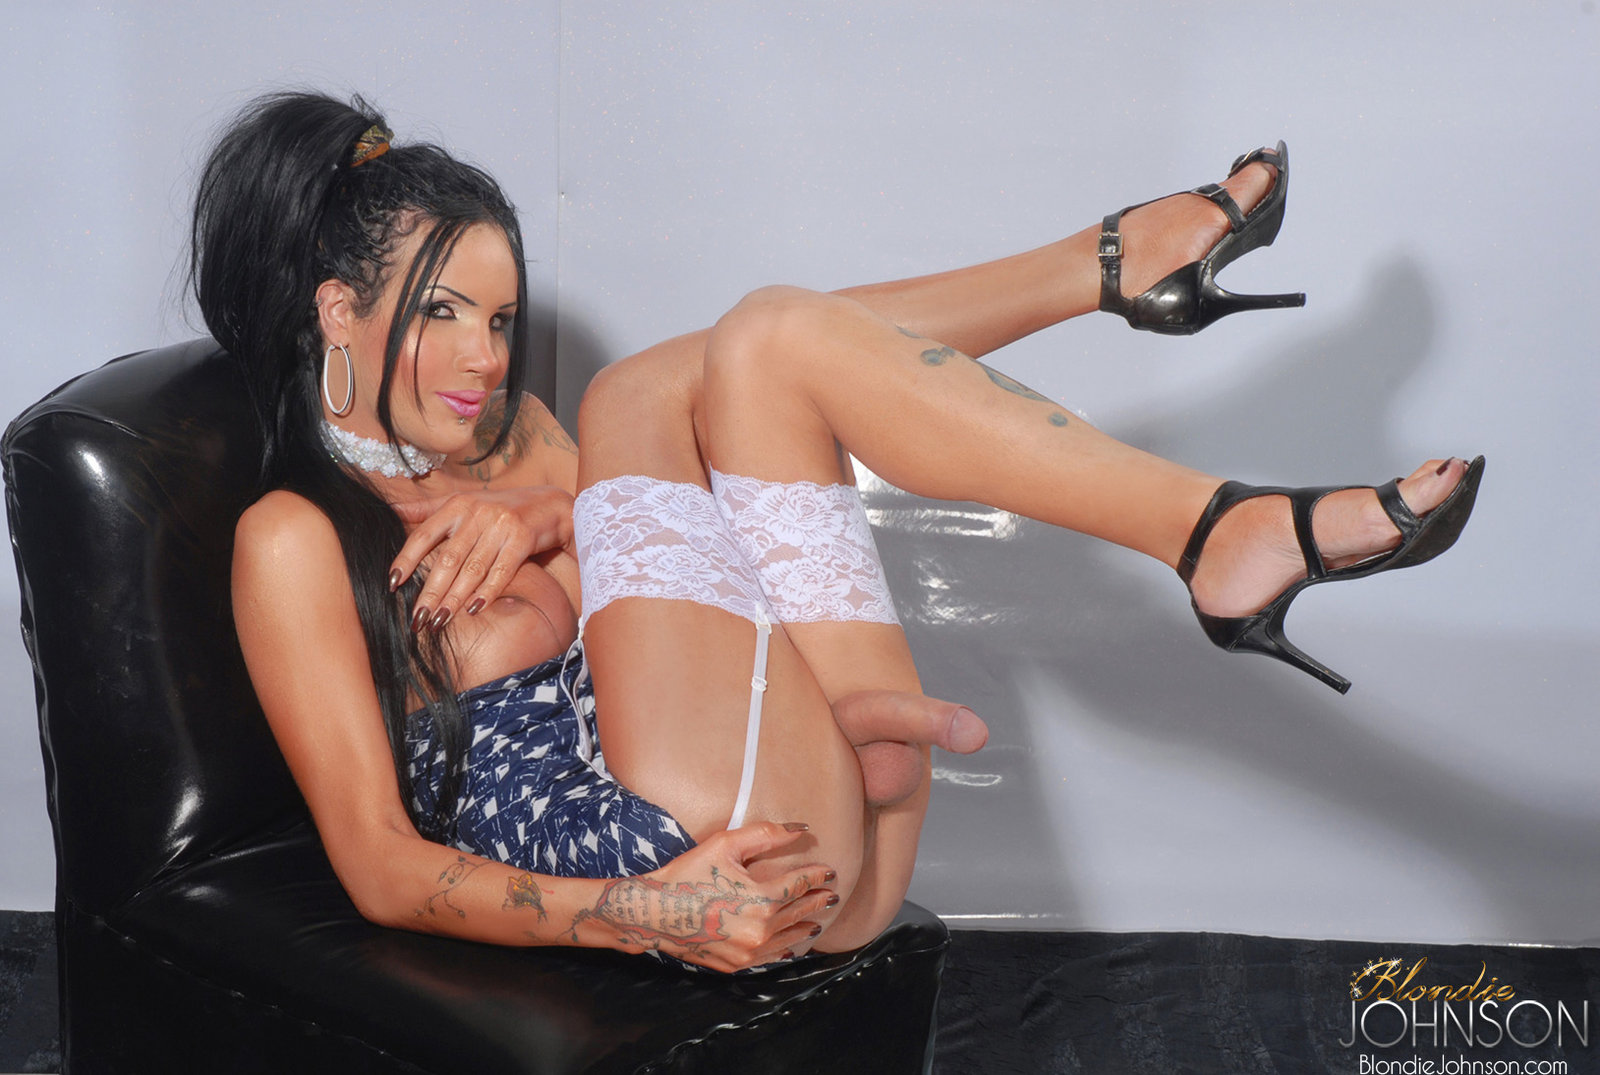 sugar shemale with a long erect shecock in lingerie and